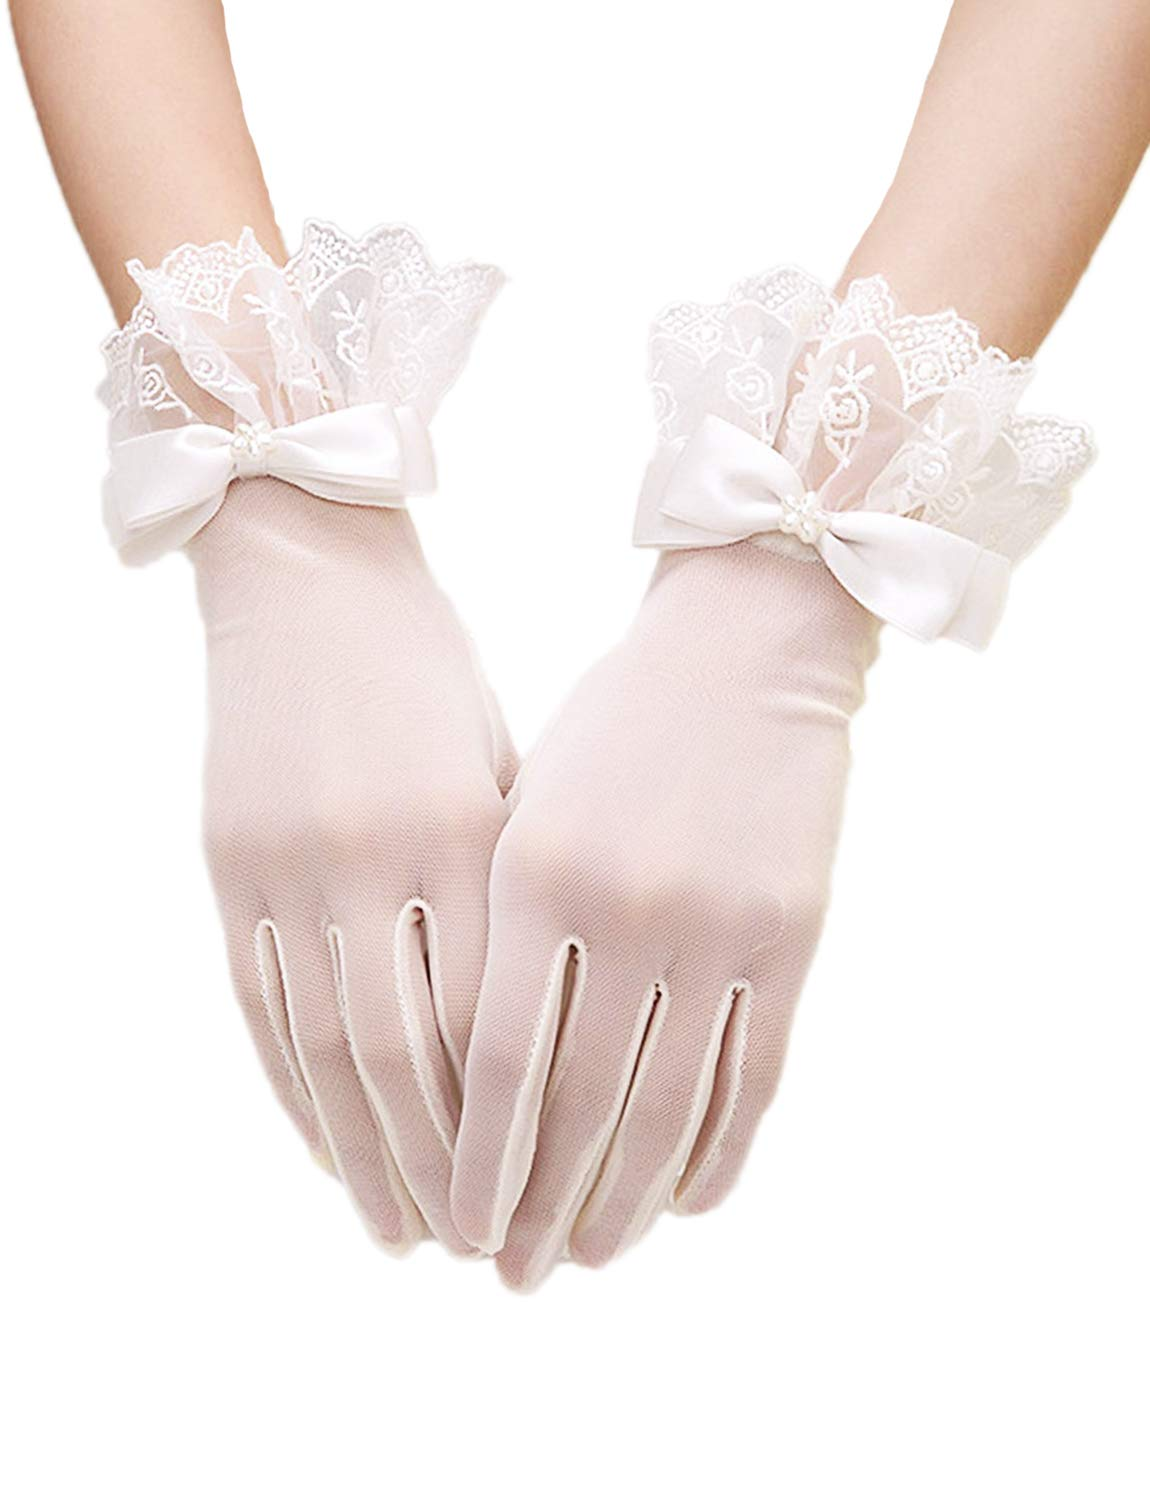 Gorse Lace Gloves Fingerless Gloves UV Protection Prom Party Driving Wedding Mother's Day SH